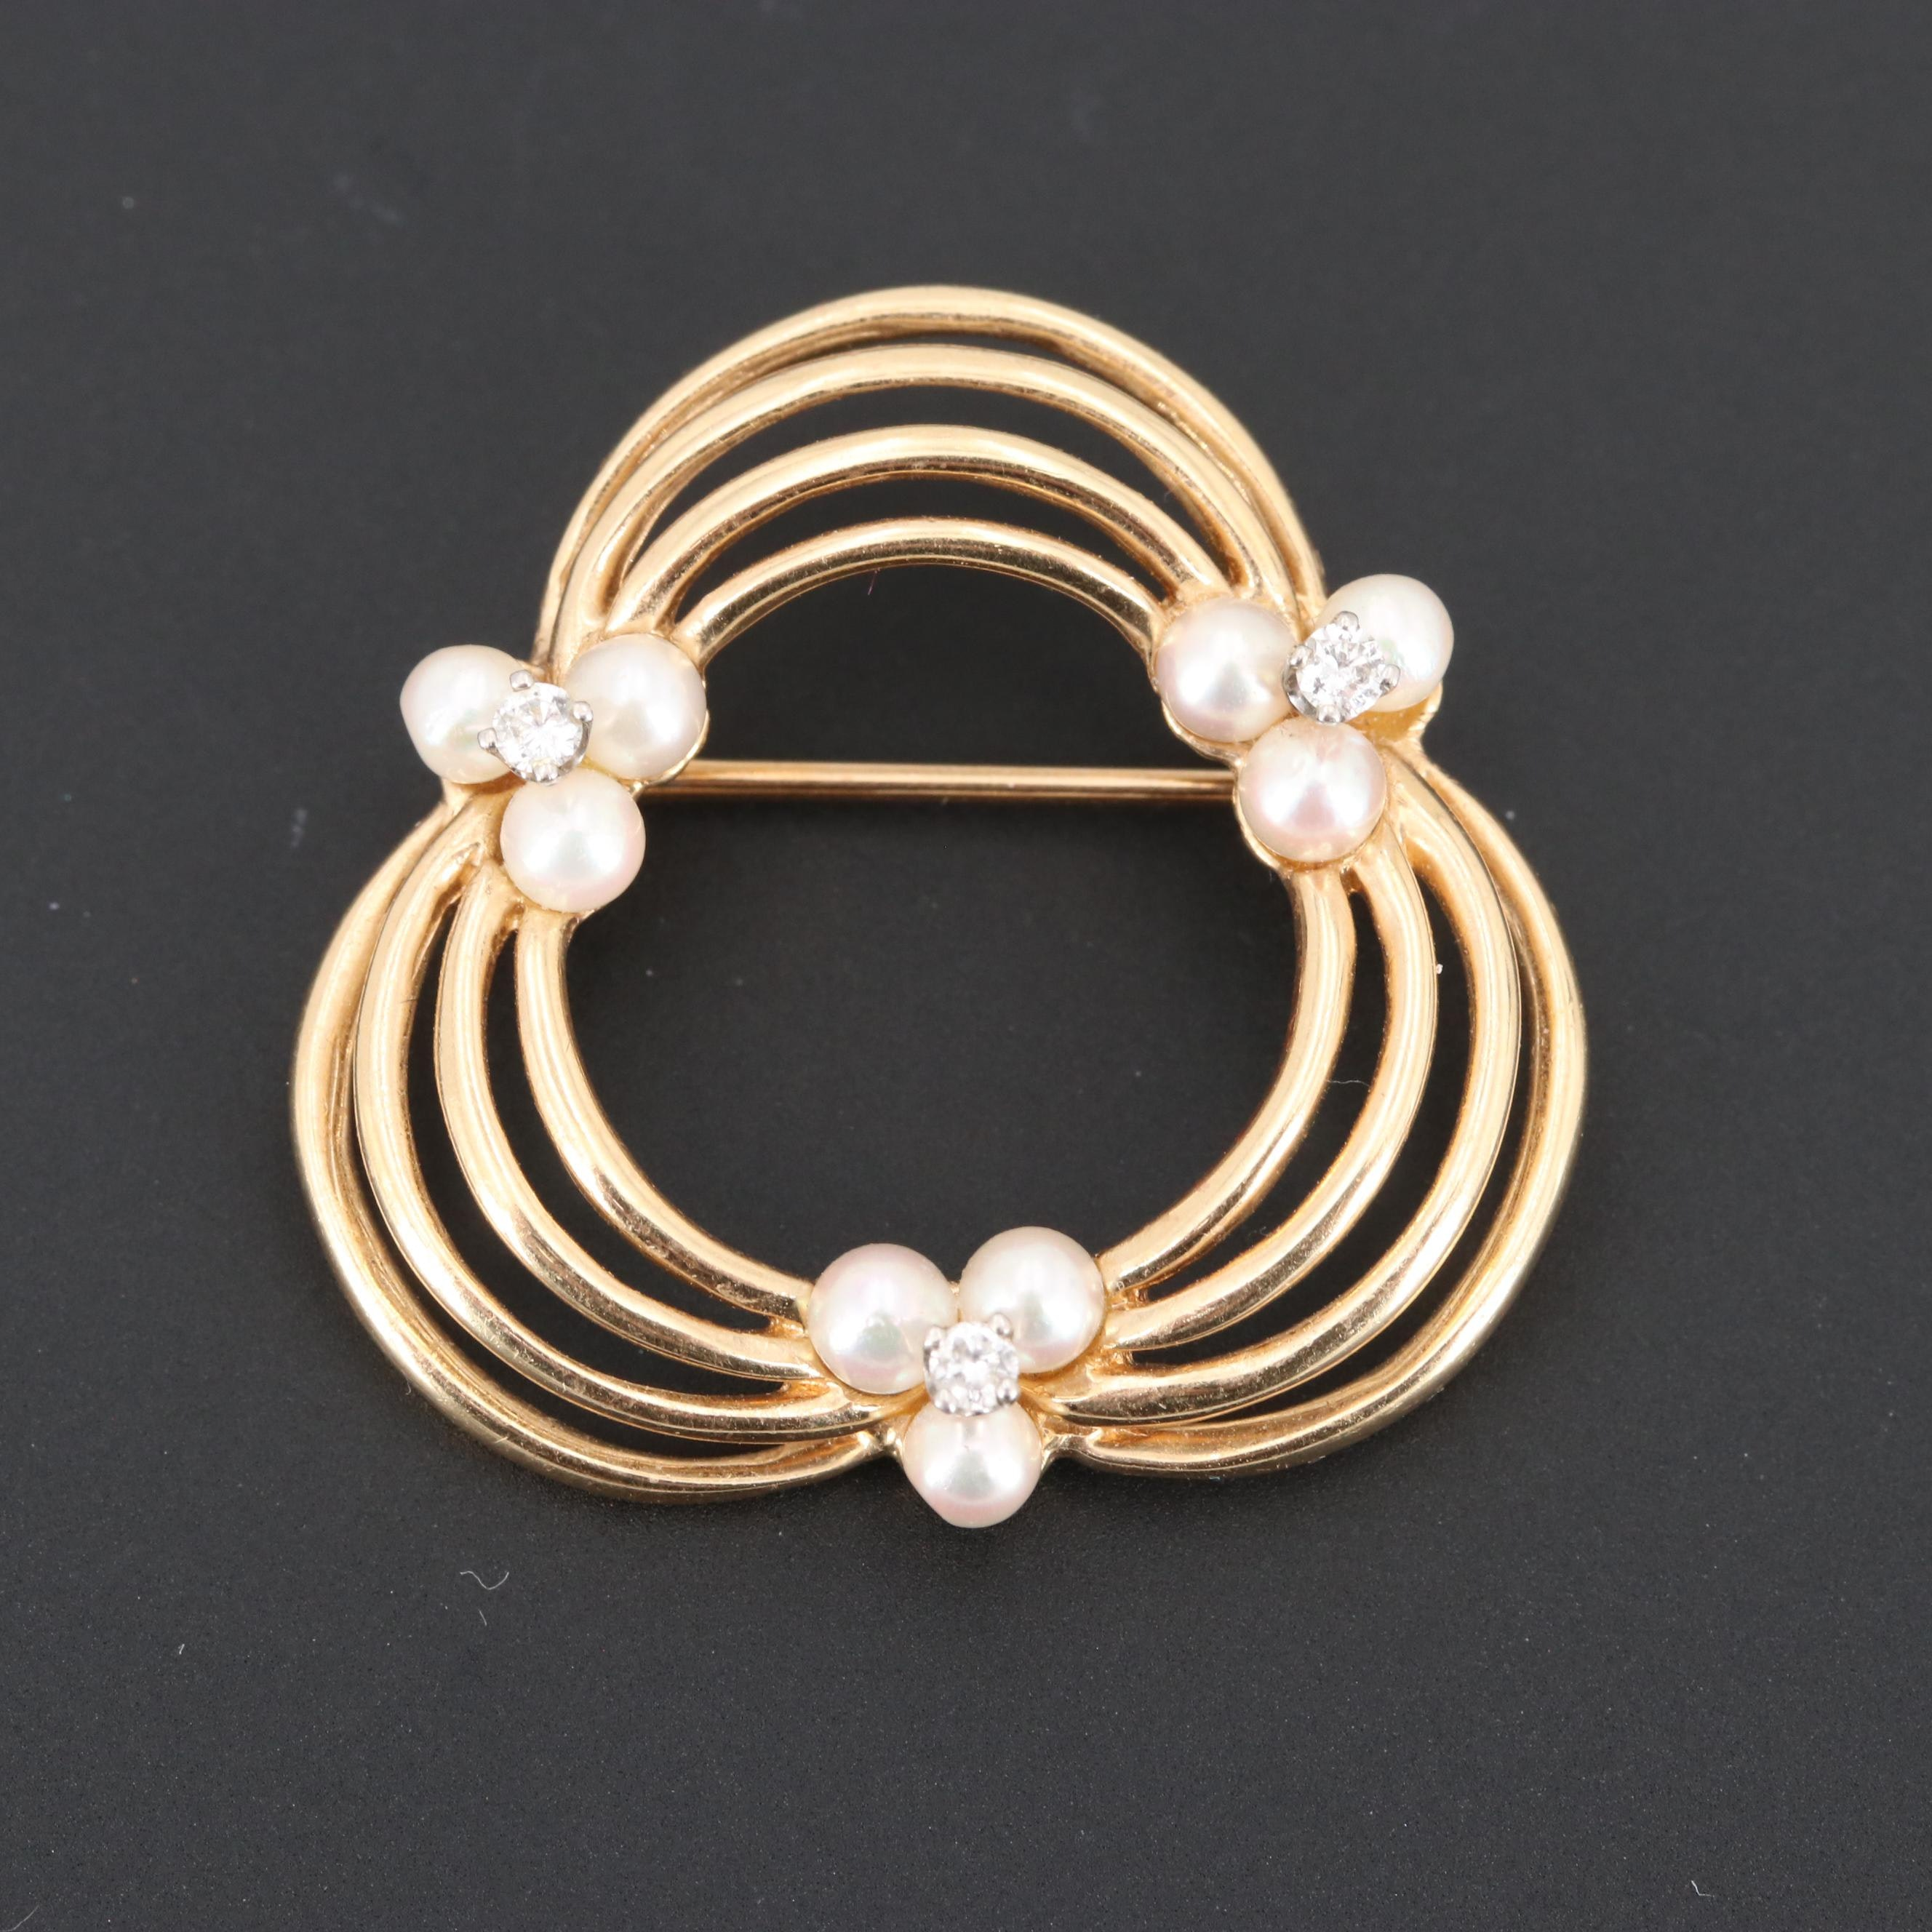 14K Yellow Gold Cultured Pearl and Diamond Brooch